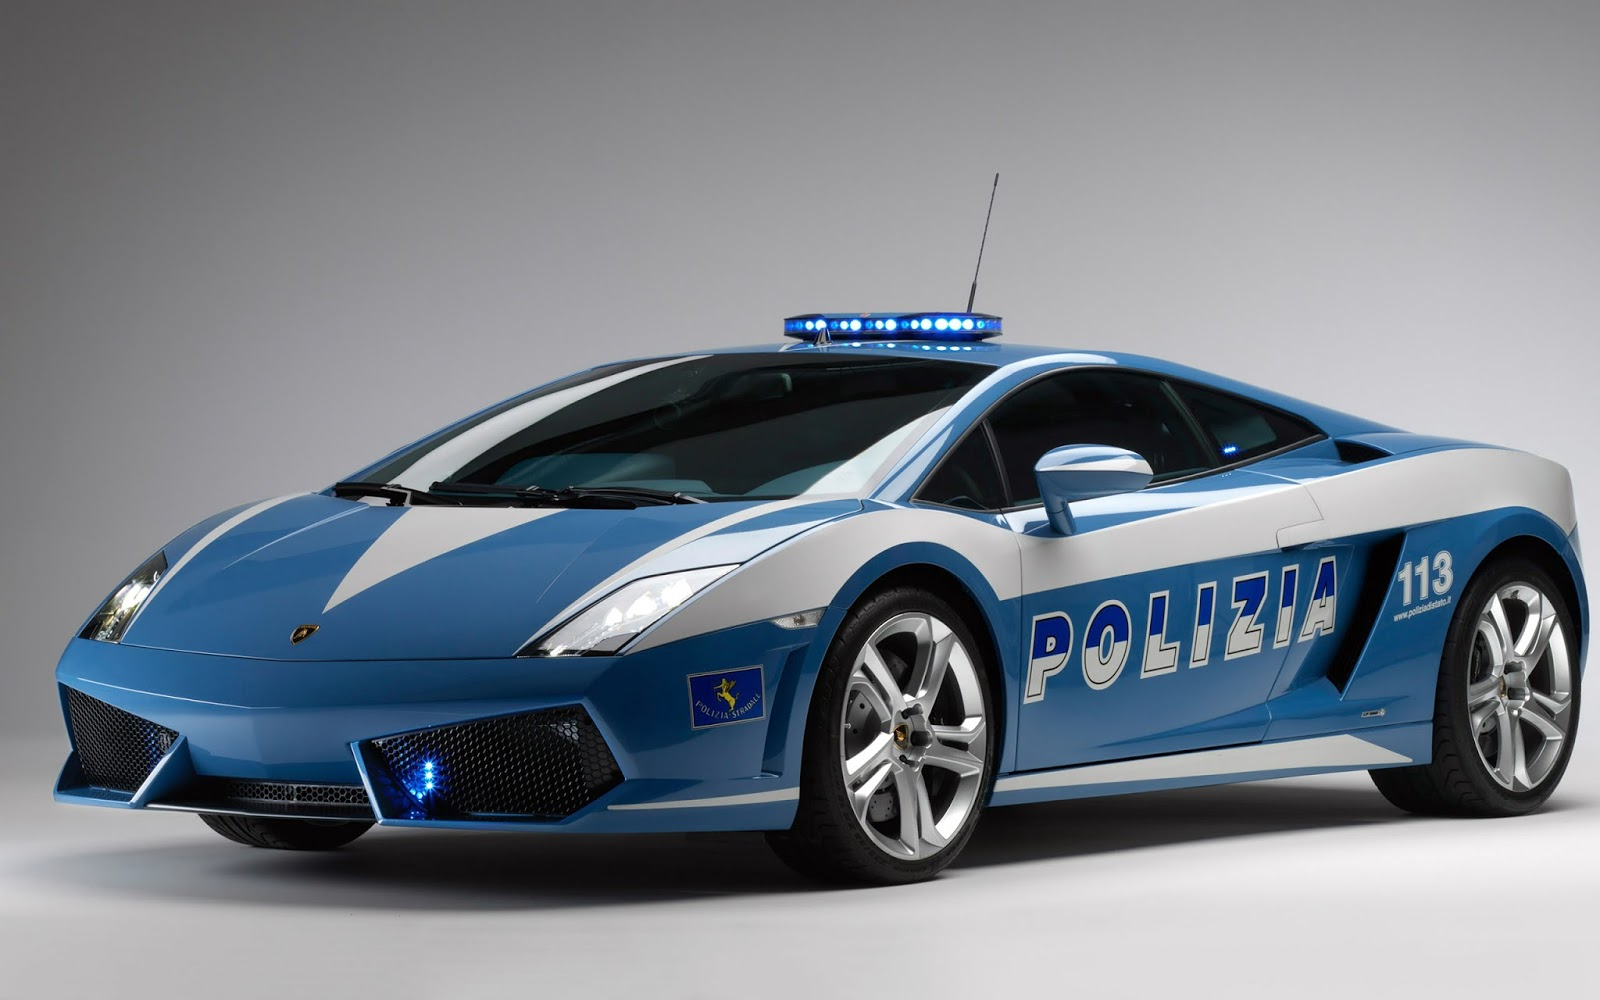 It belongs to the italian state police and was donated by the italian car company to help accident and crime prevention and sustain security on italian